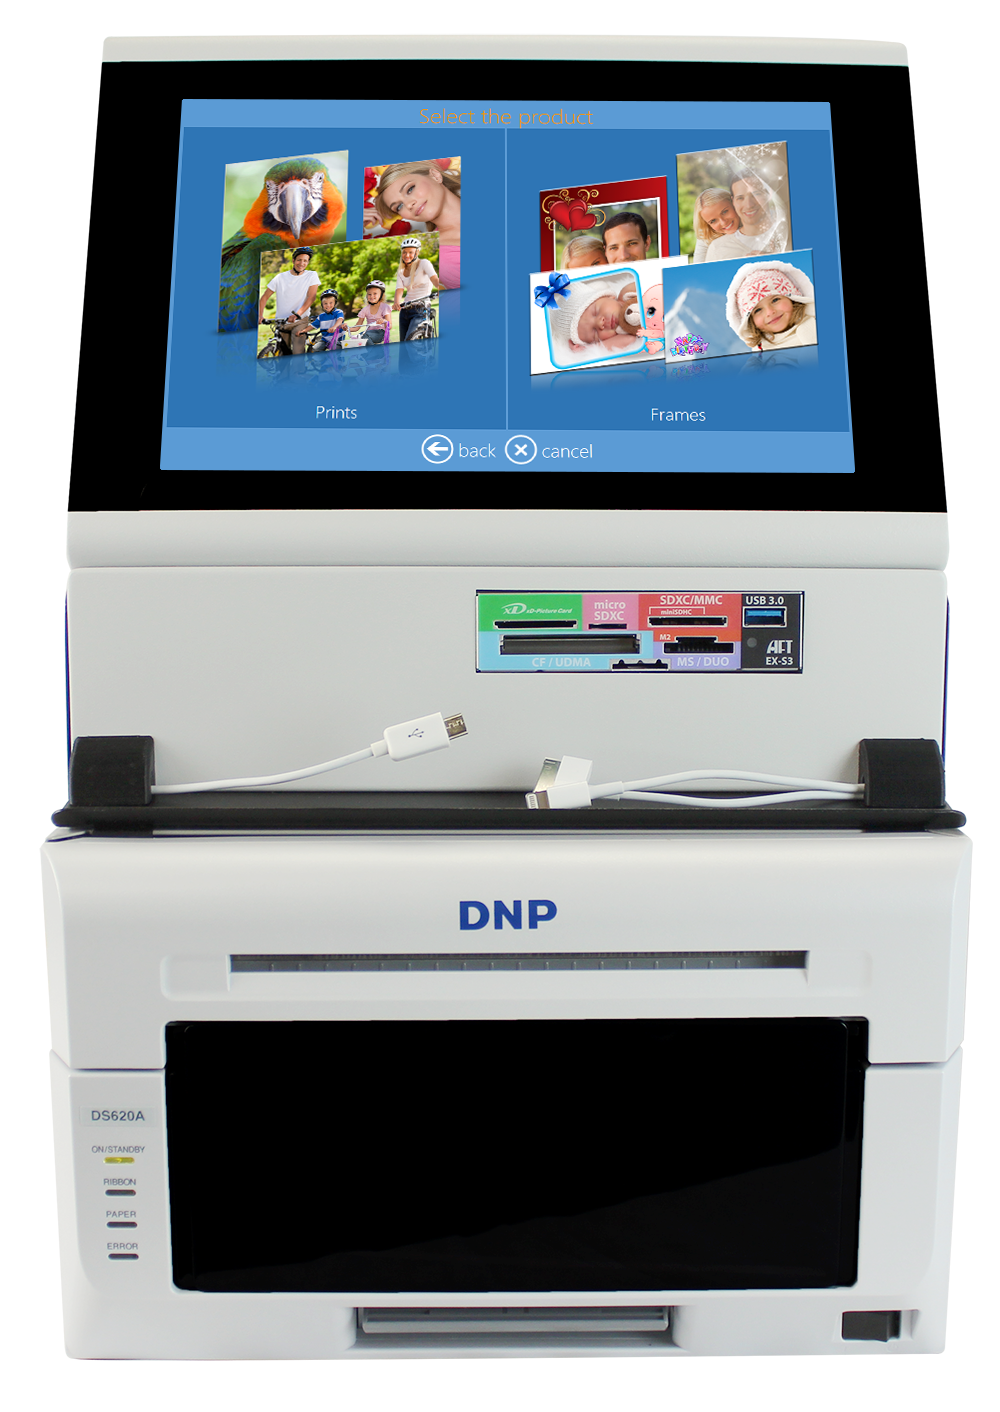 Dnp Snaplab Sl620a Compact Kiosk System Imaging Spectrum